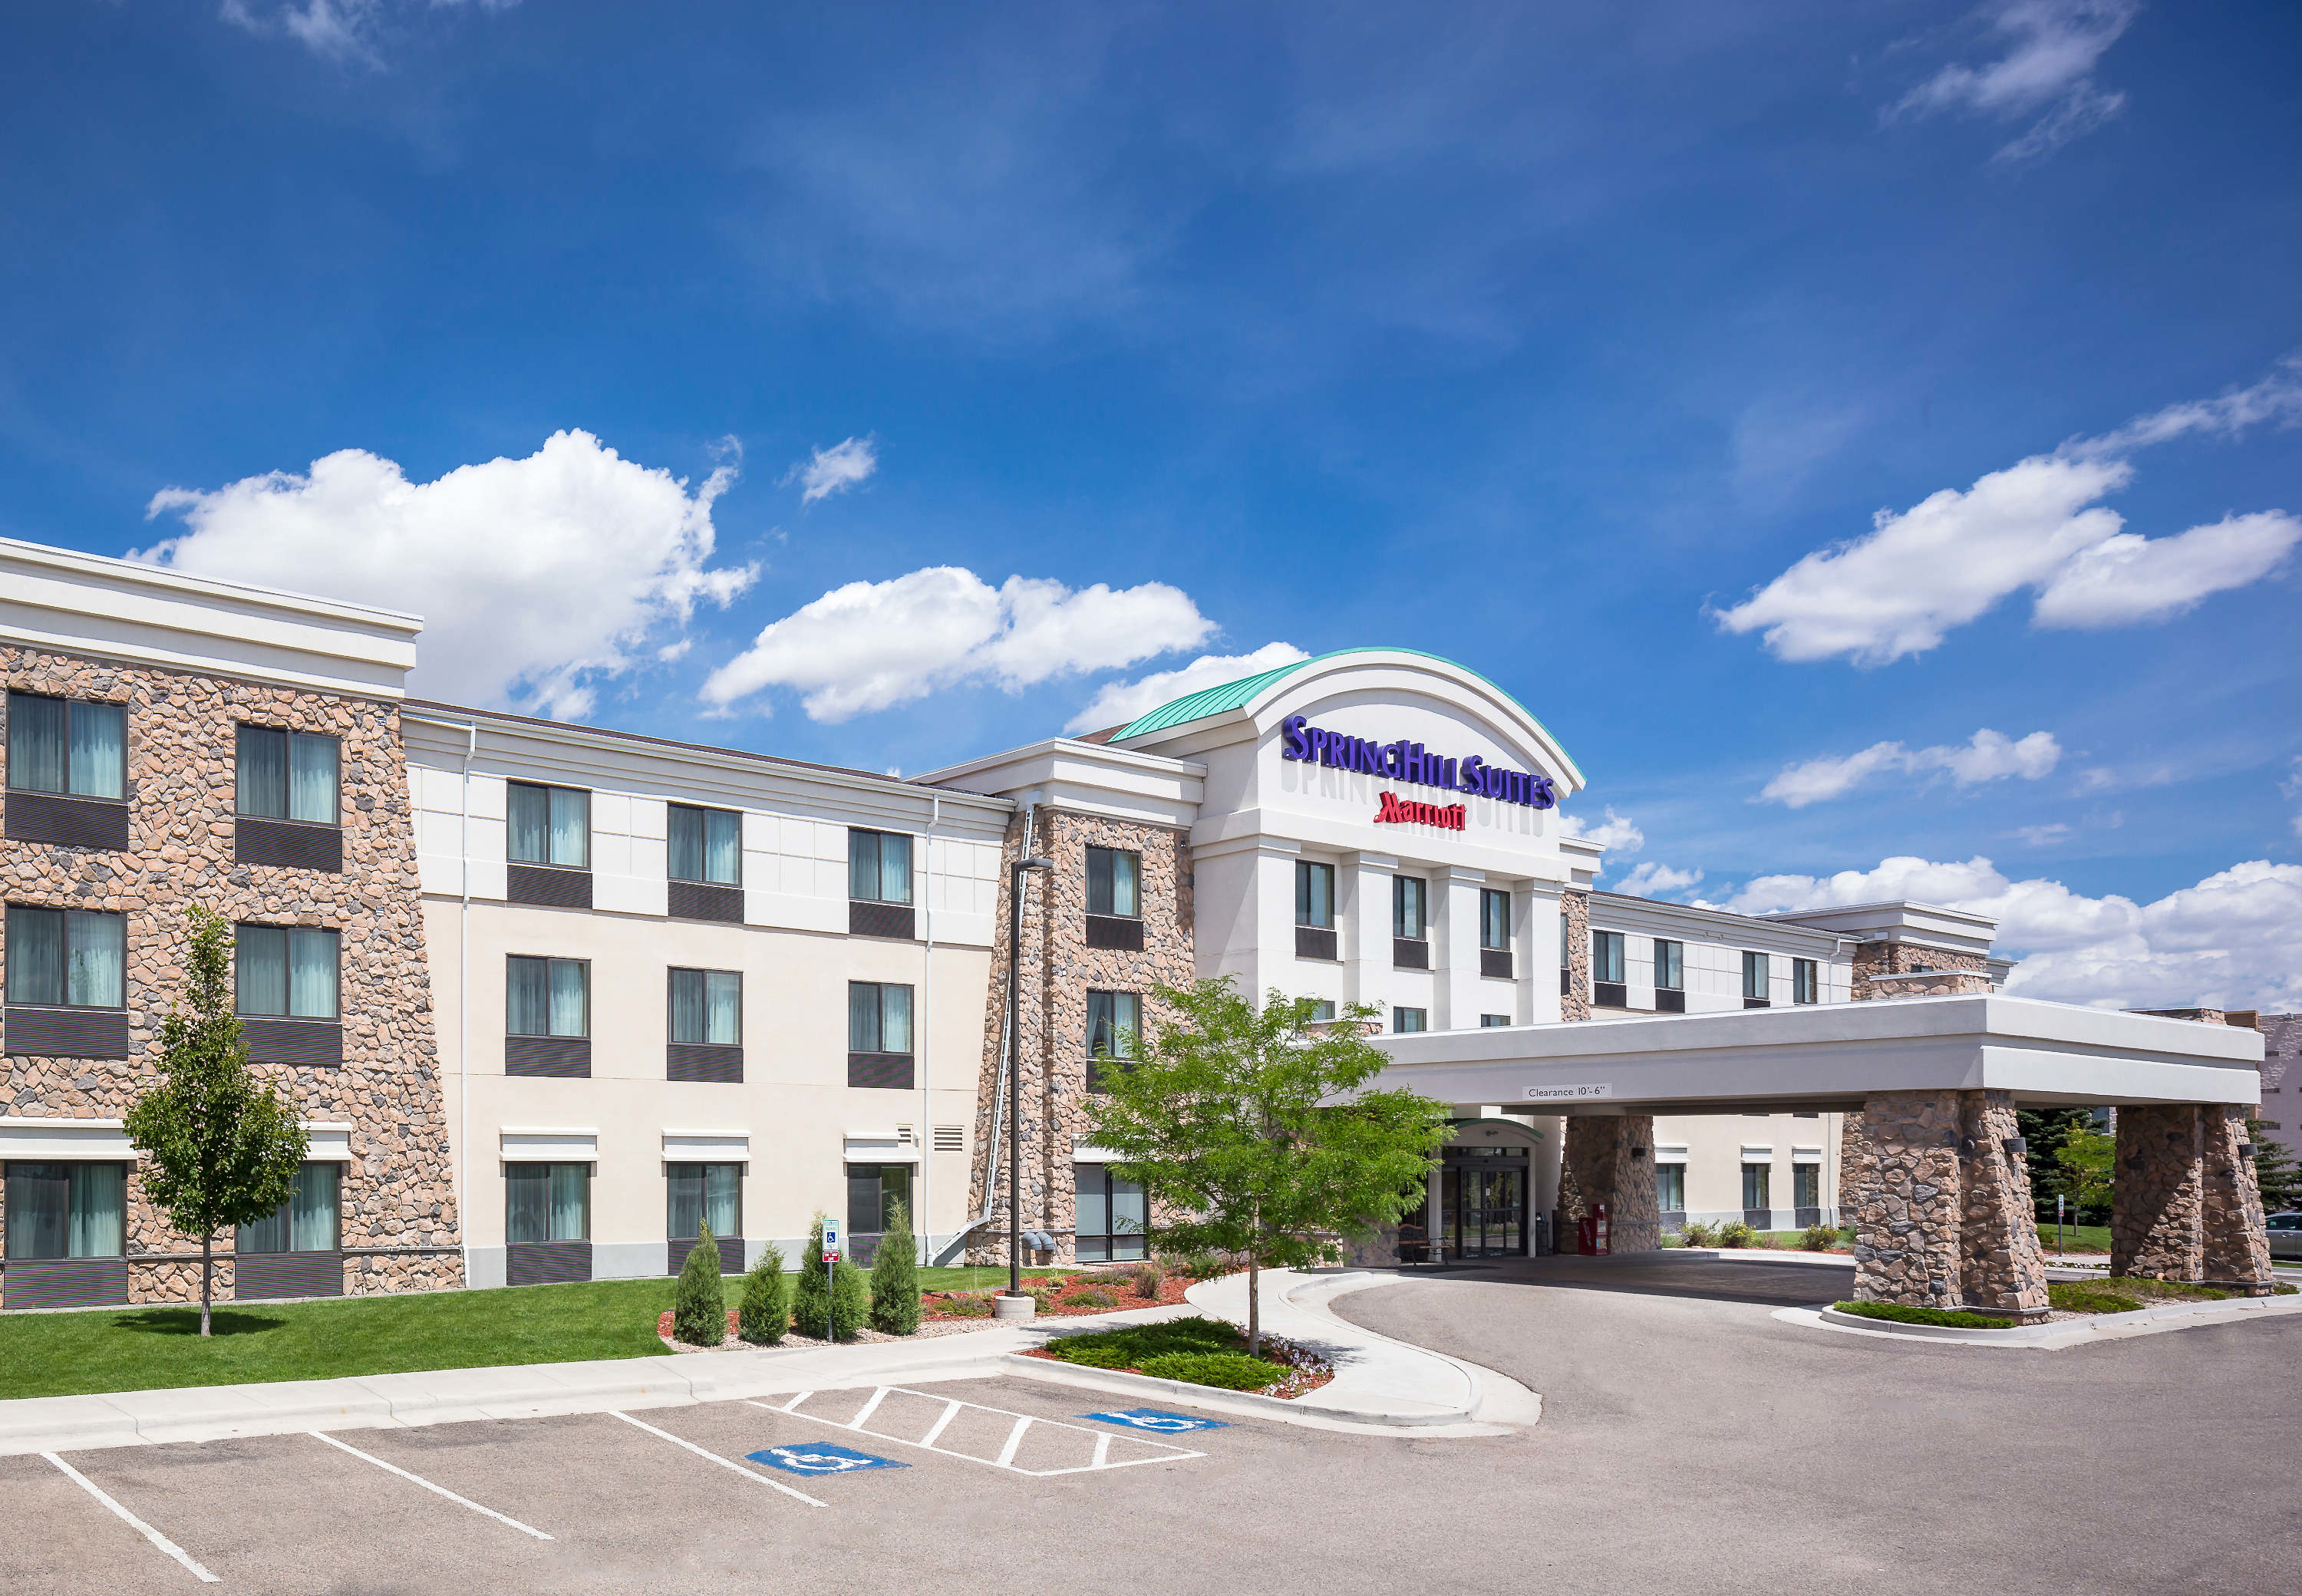 SpringHill Suites by Marriott Cheyenne image 1